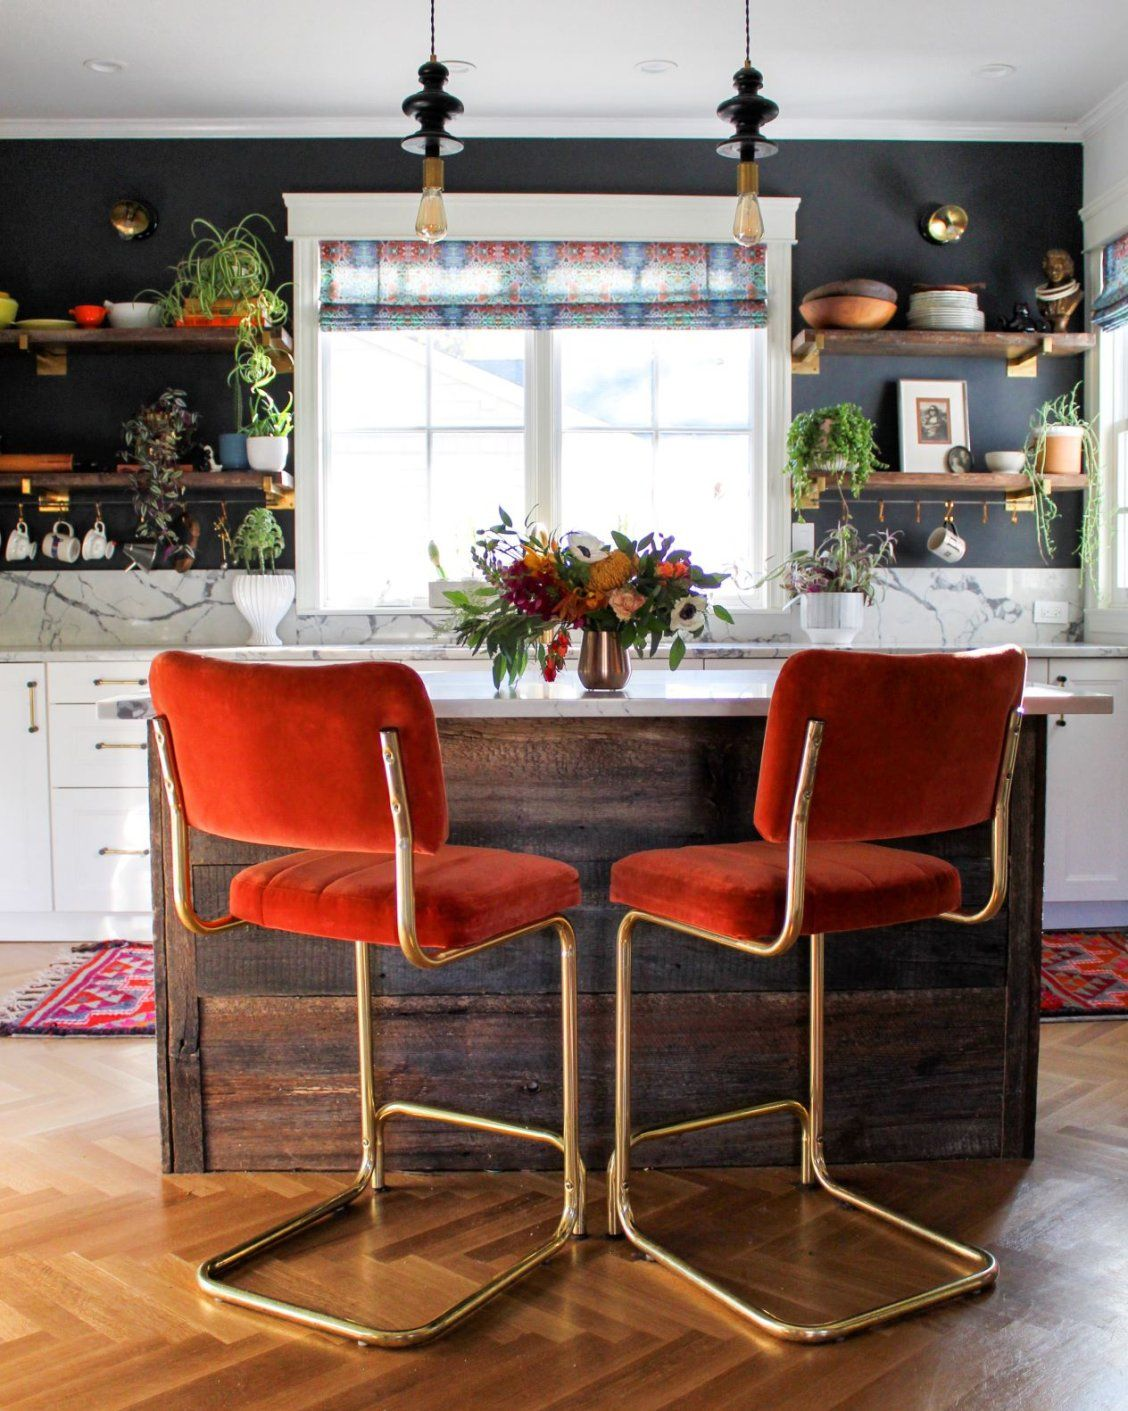 Nearly Every Room In This Vintage Inspired Eclectic Farmhouse Is Fabulously Decorated Eclectic Farmhouse Decor Home